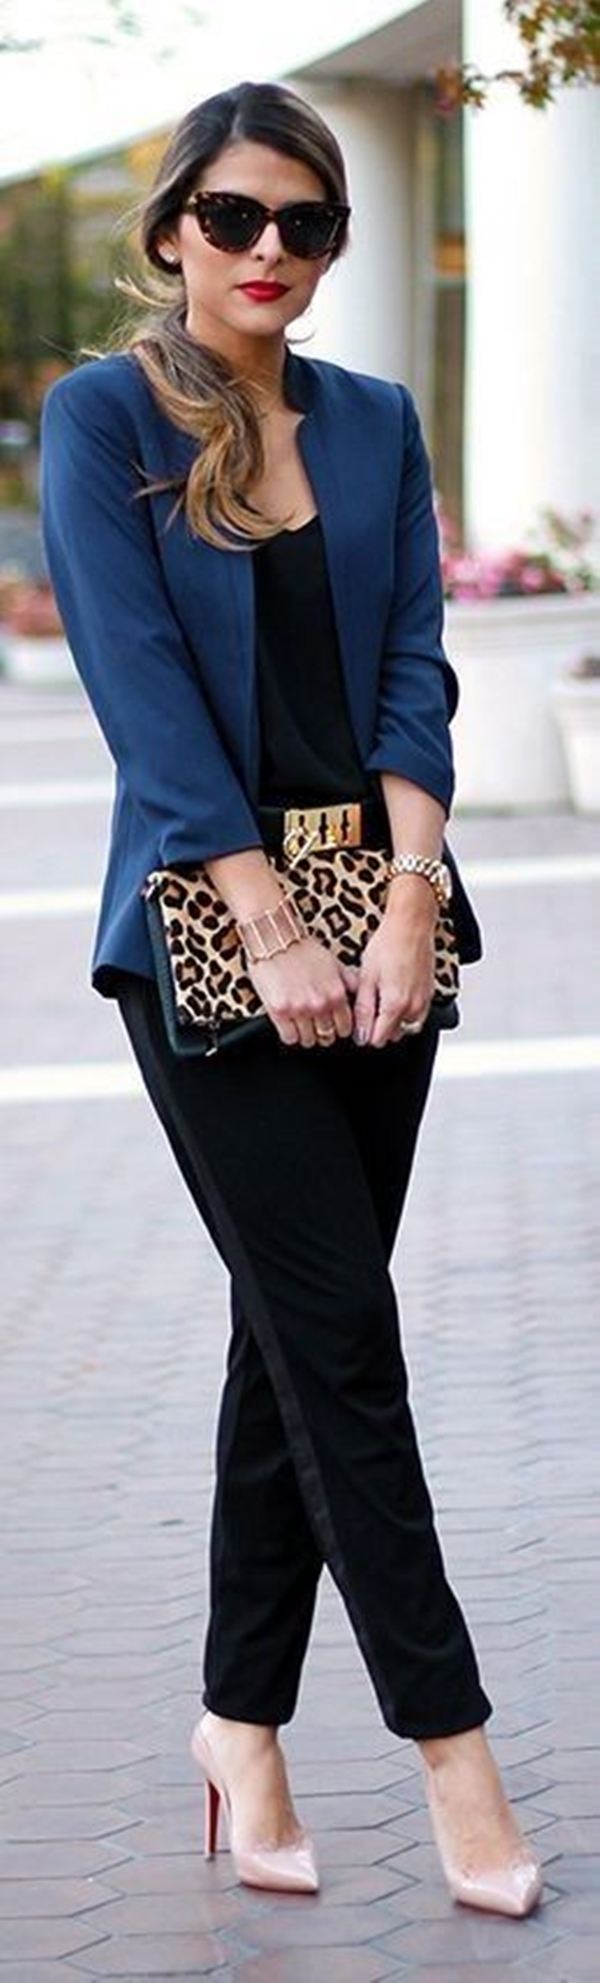 outfits-with-blazer-for-office-women-22